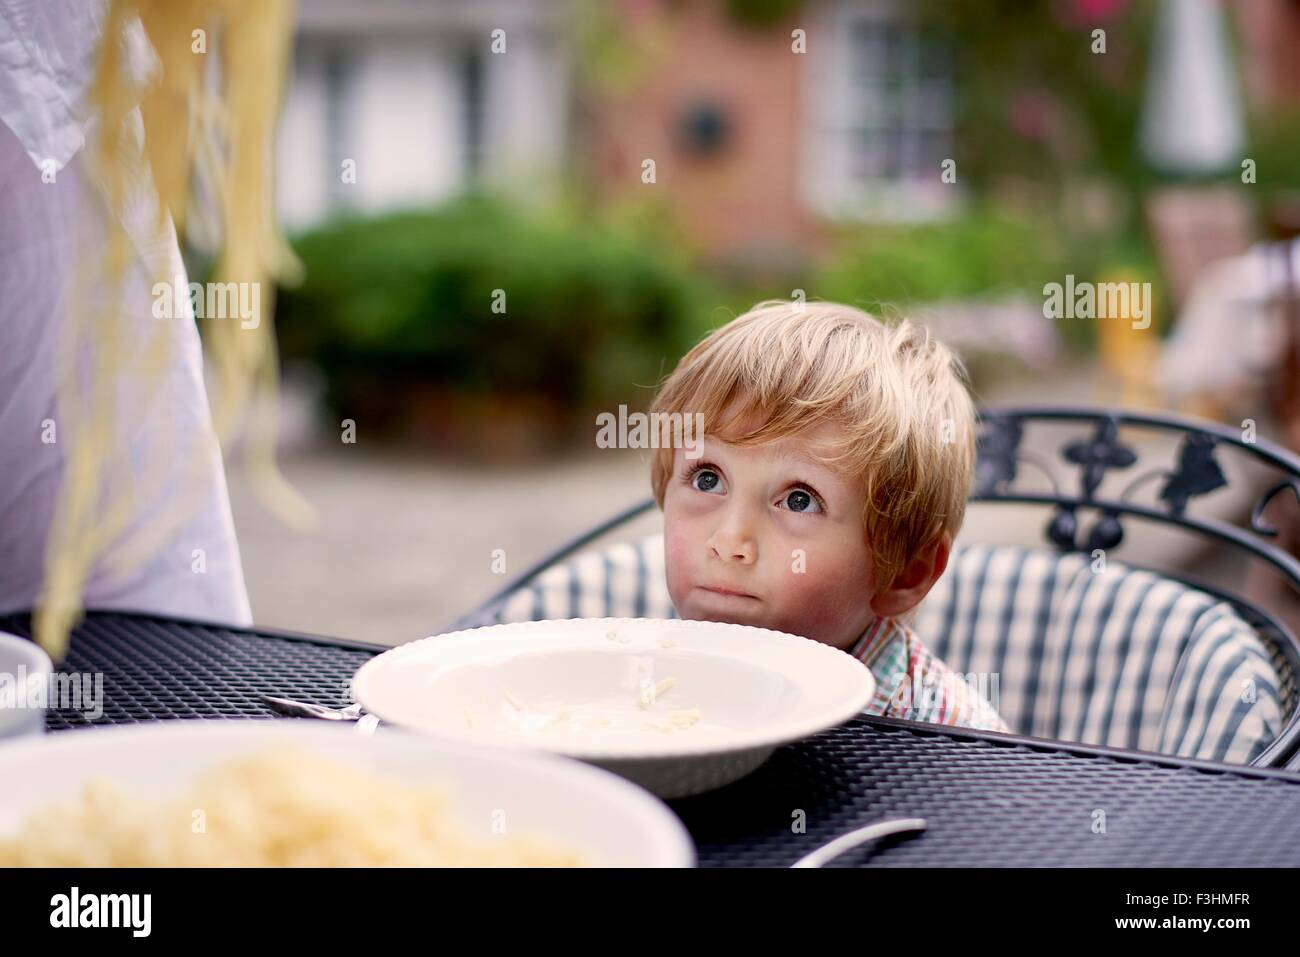 Boy sitting at garden table waiting for spaghetti to be served - Stock Image